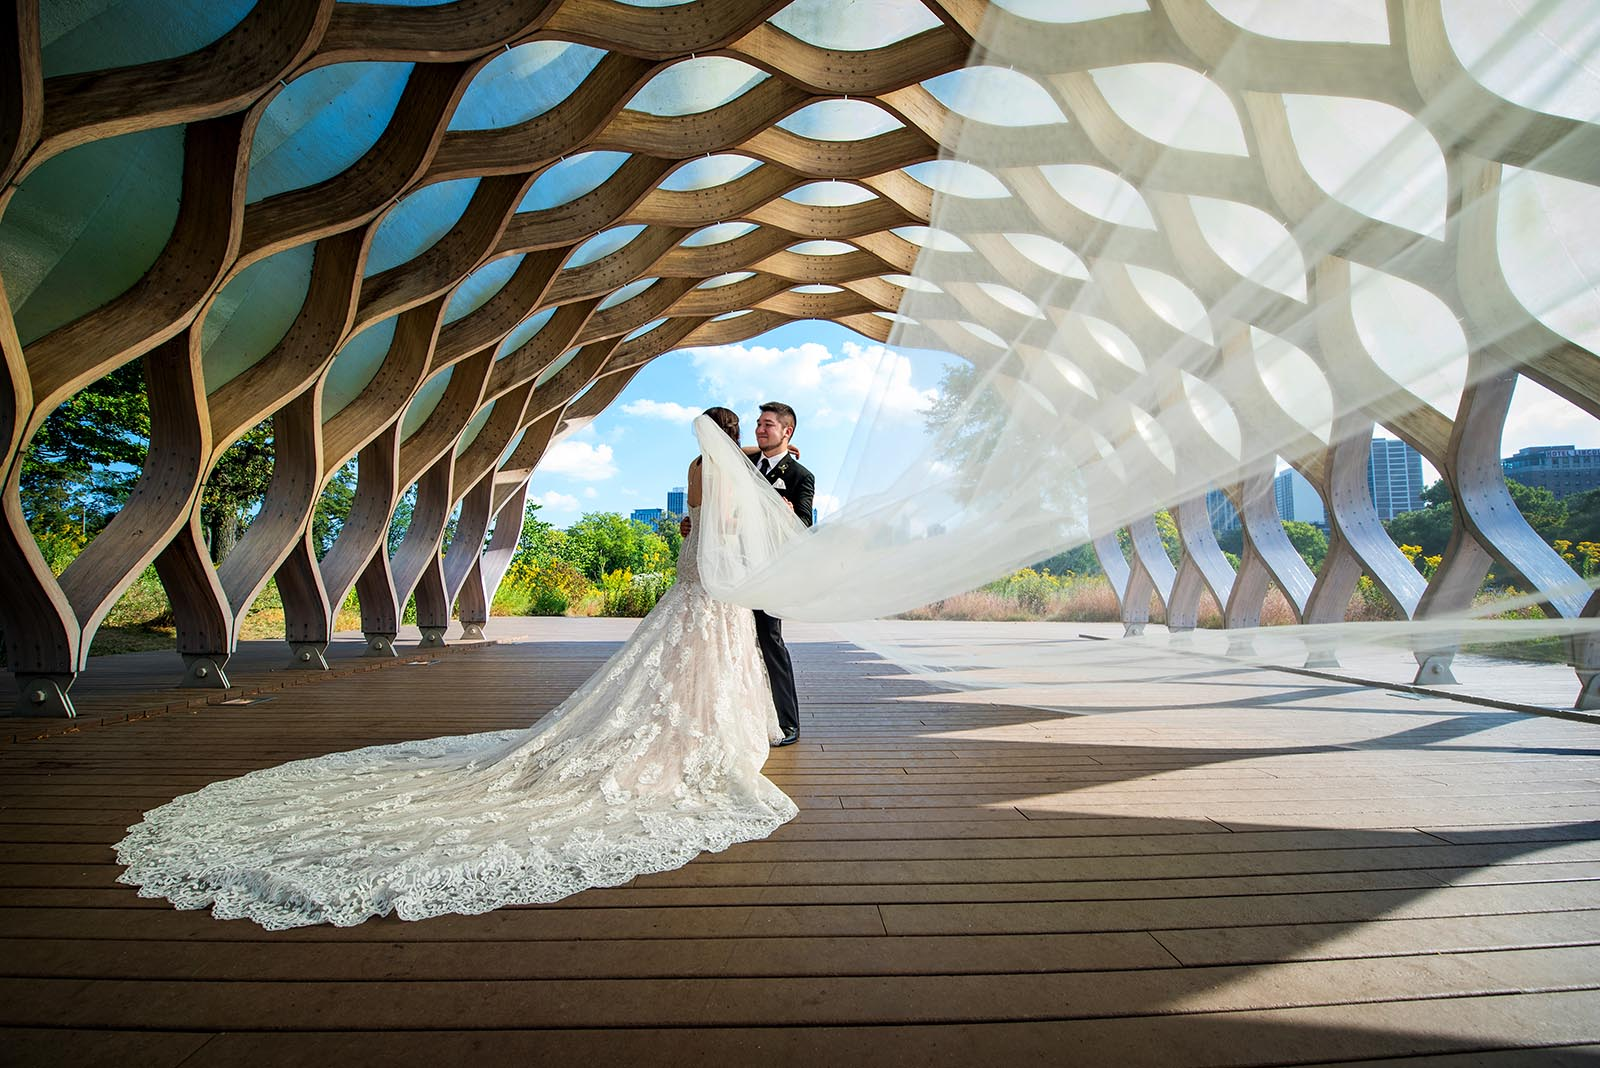 Bride Groom Wedding Day Honeycomb Lincoln Park Chicago South Pond